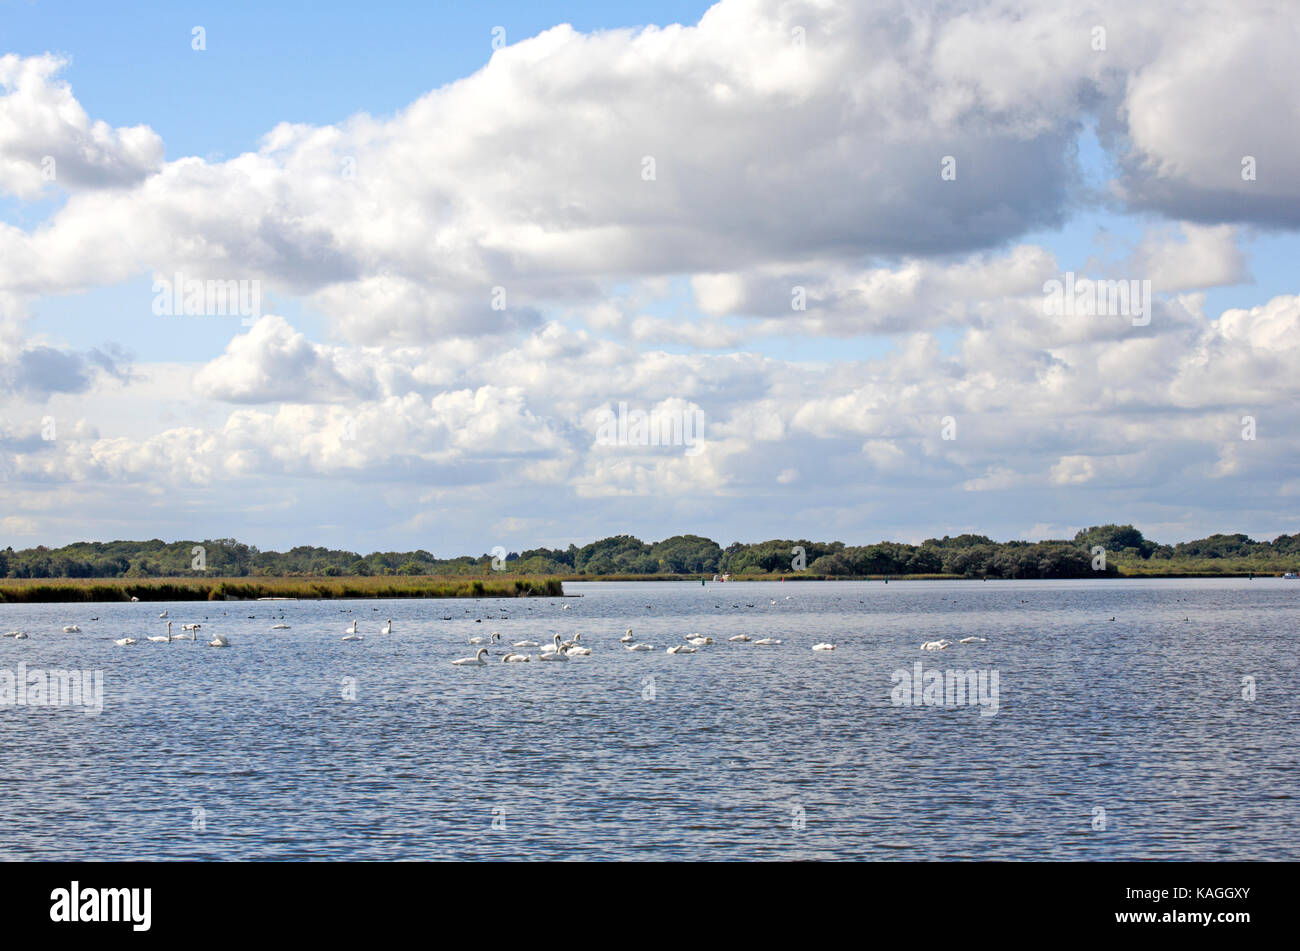 A herd of Mute Swans, Cygnus olor, on Hickling Broad National Nature Reserve, Norfolk, England, United Kingdom. - Stock Image